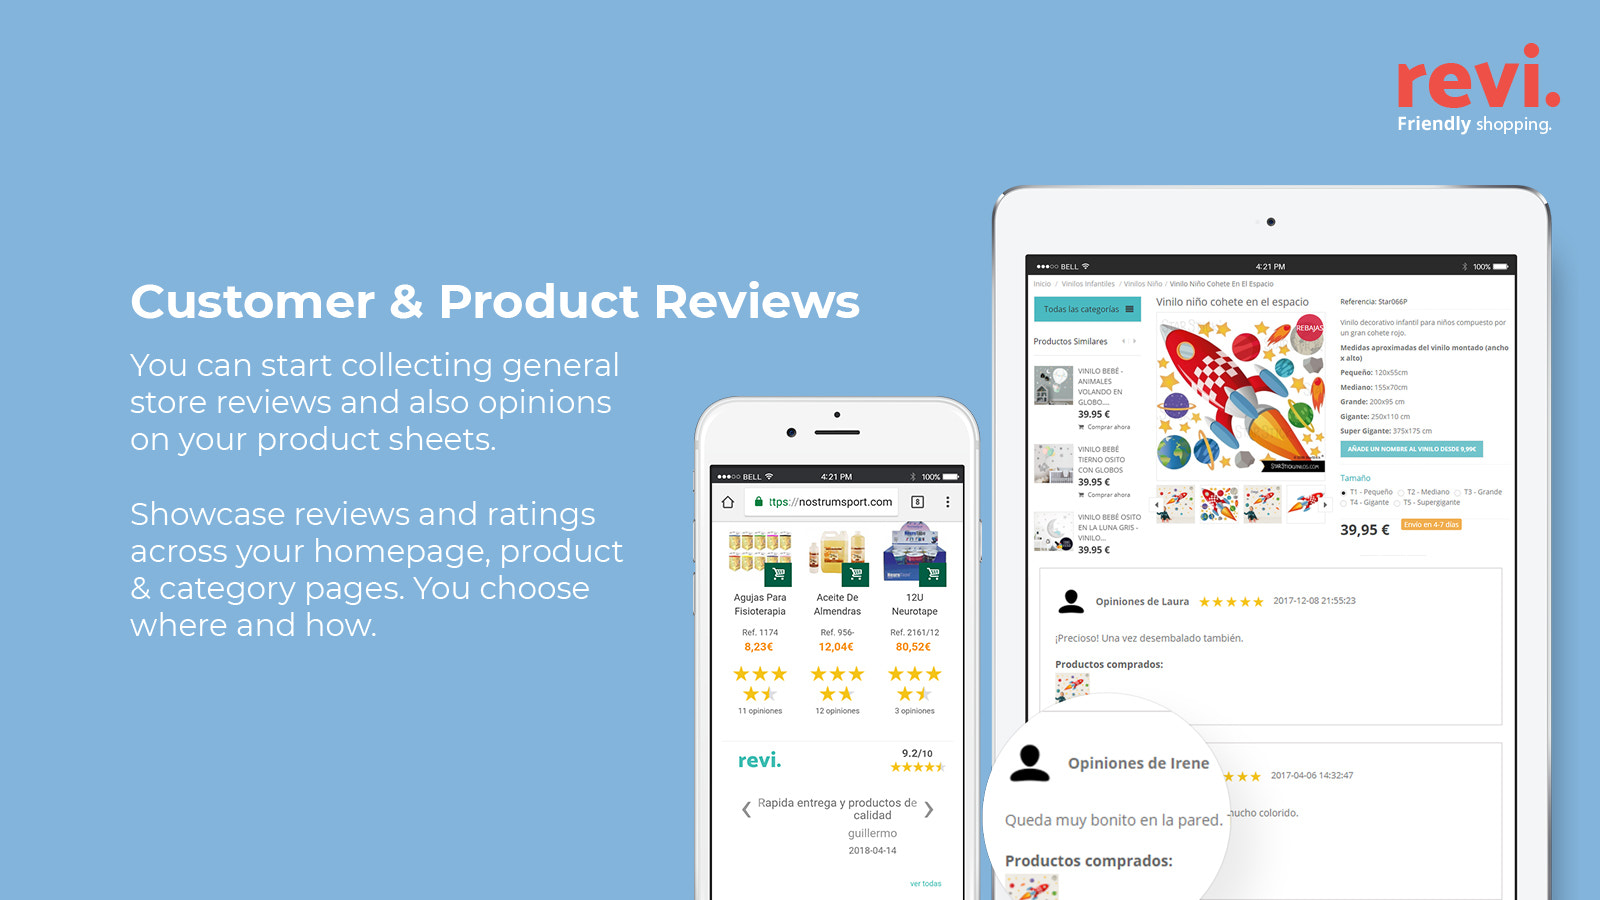 Product and Customer Reviews